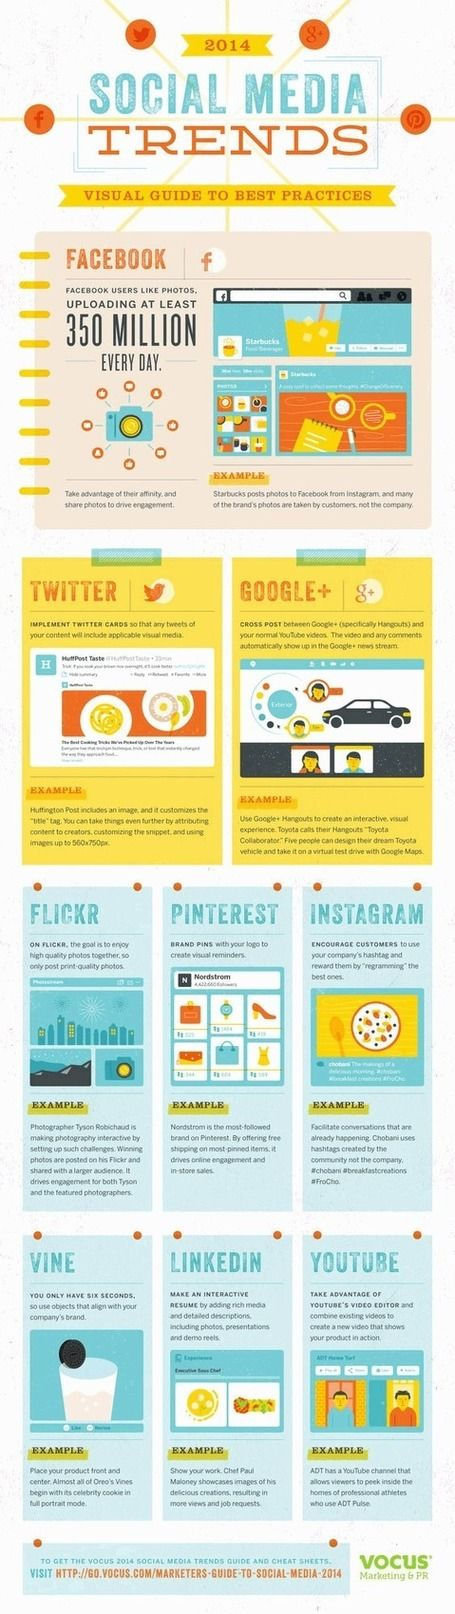 visualizing social media #socialmediatips